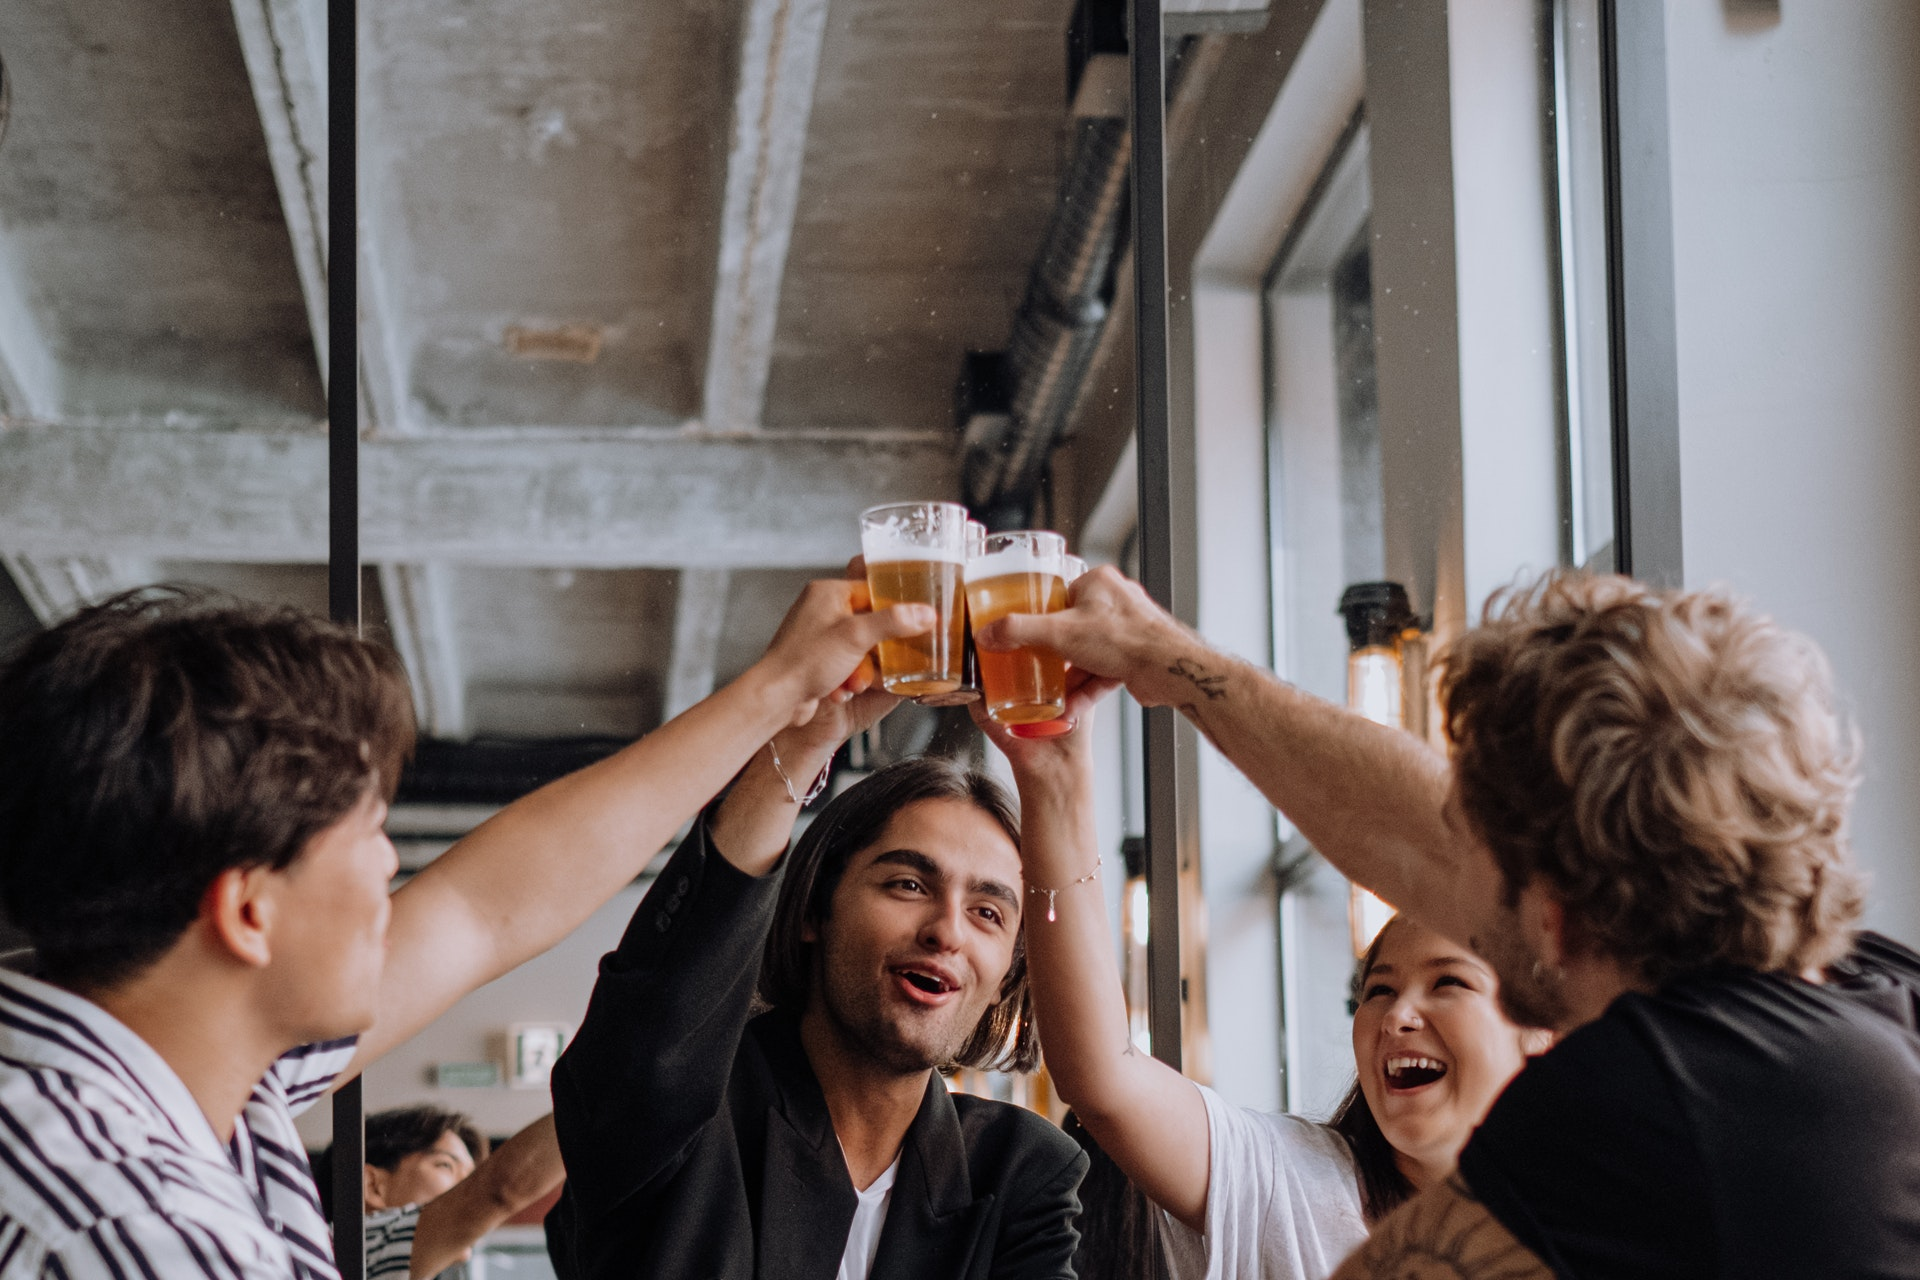 People toasting over beers and giving thanks